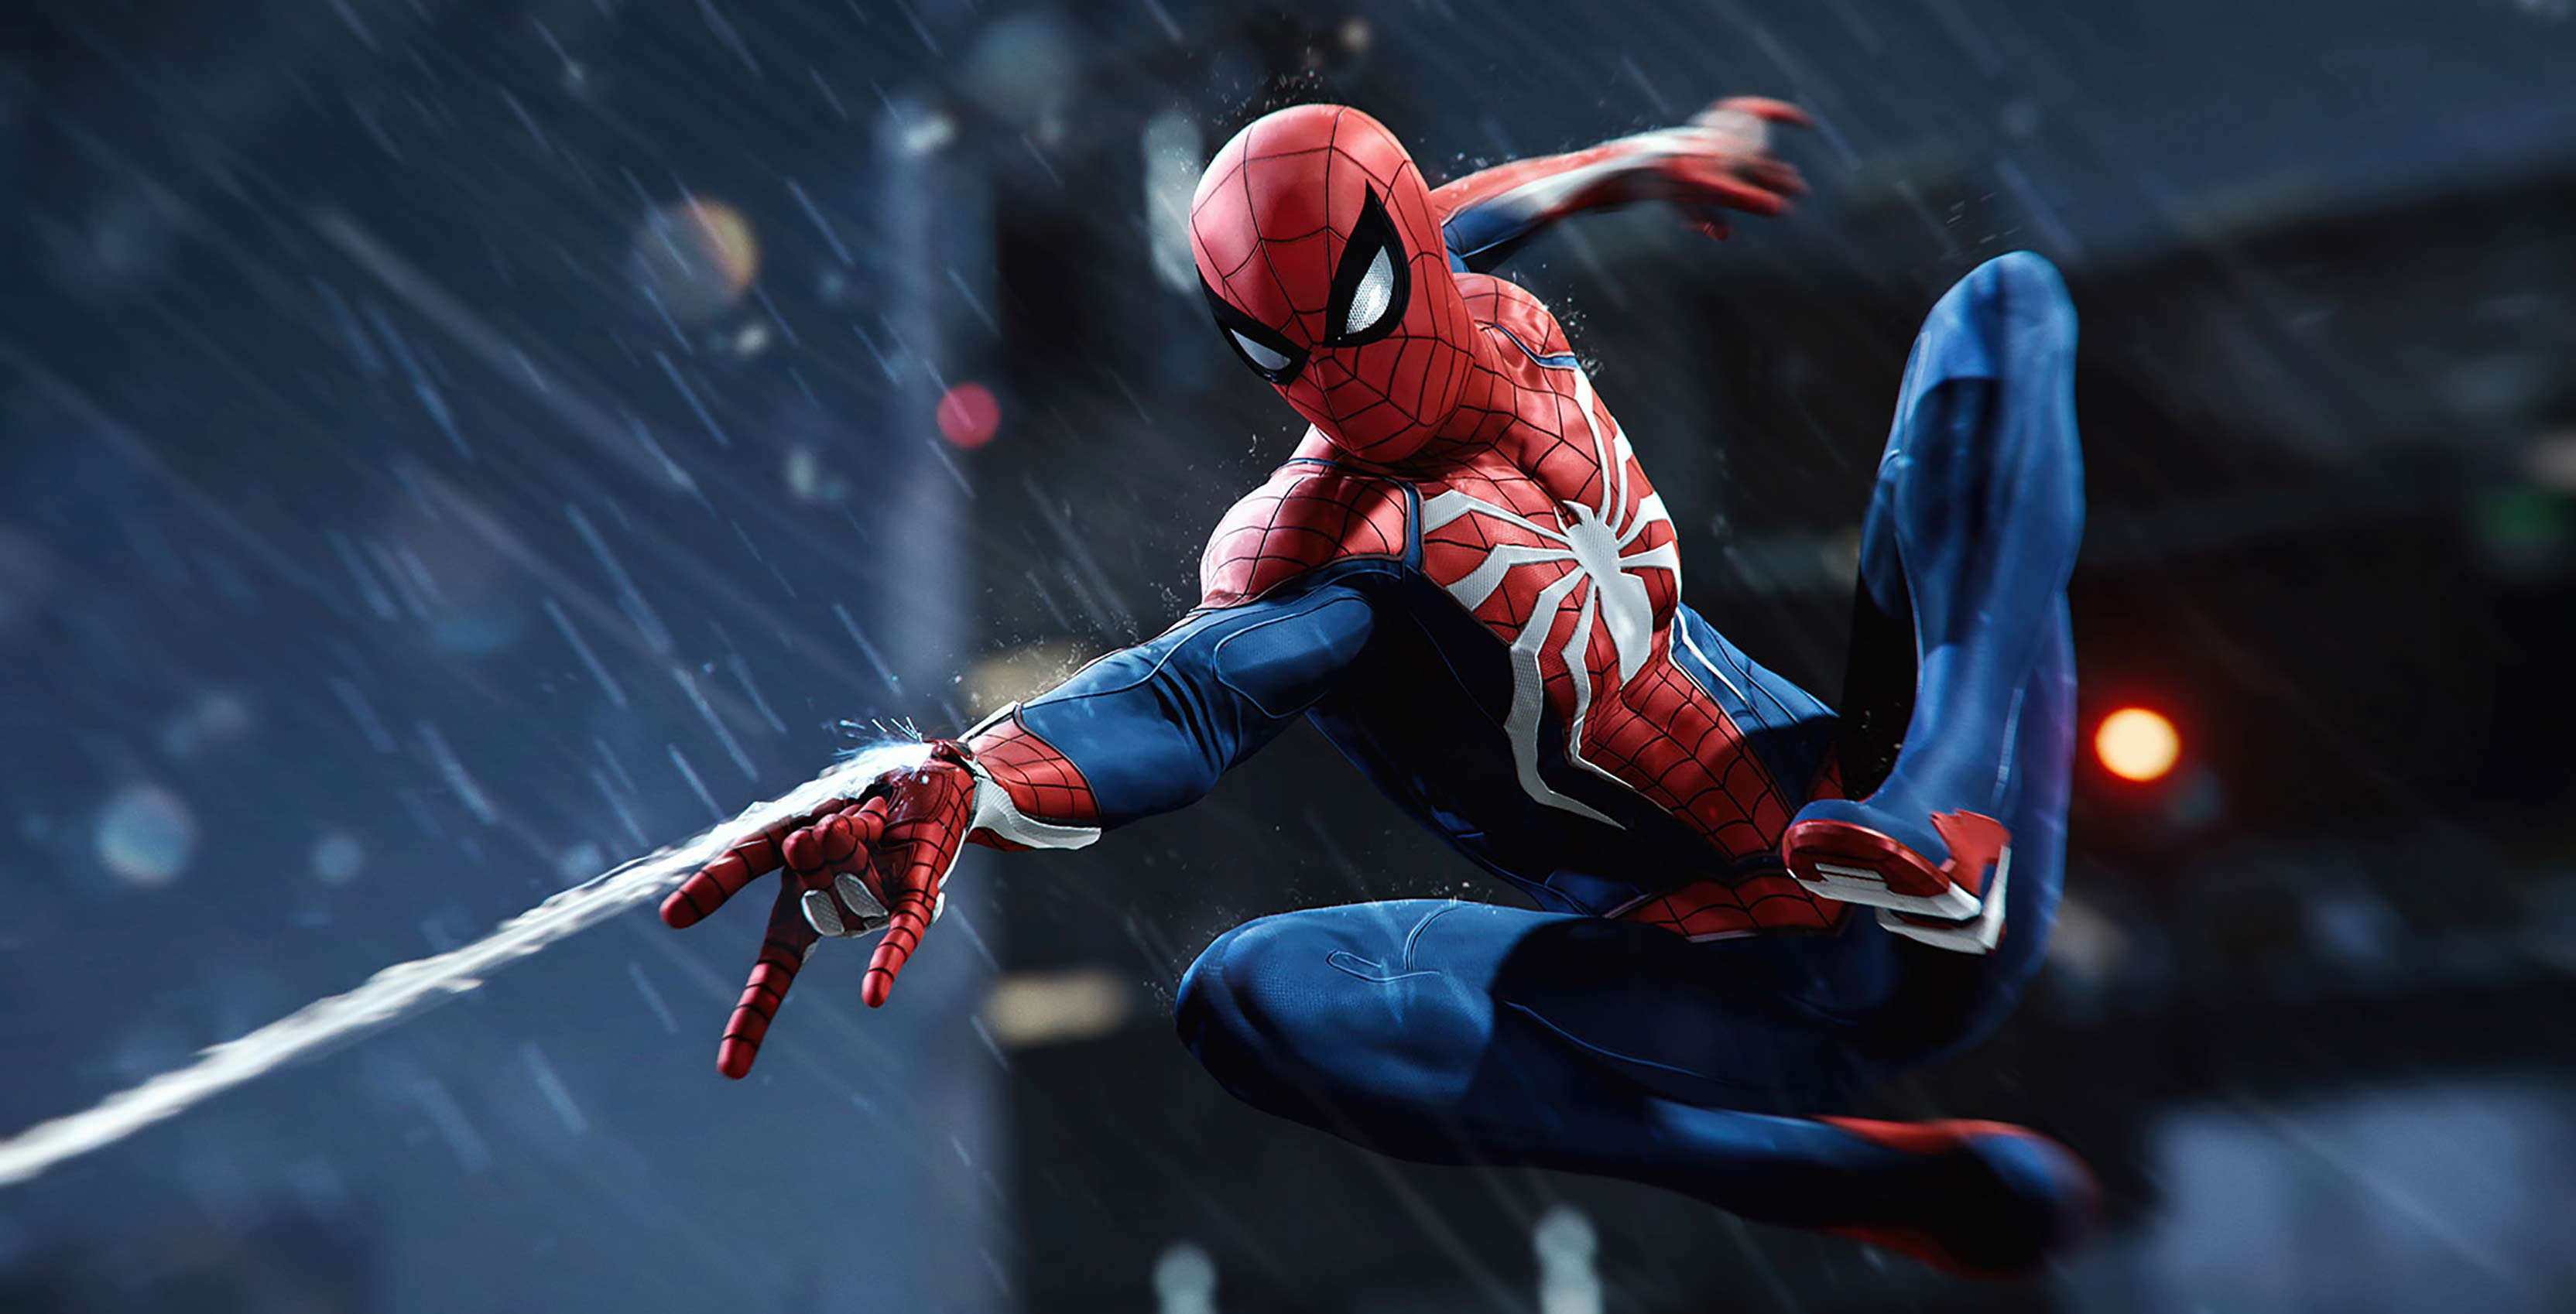 PS4 Black Friday deals include Spider-Man bundle, PS Plus discounts